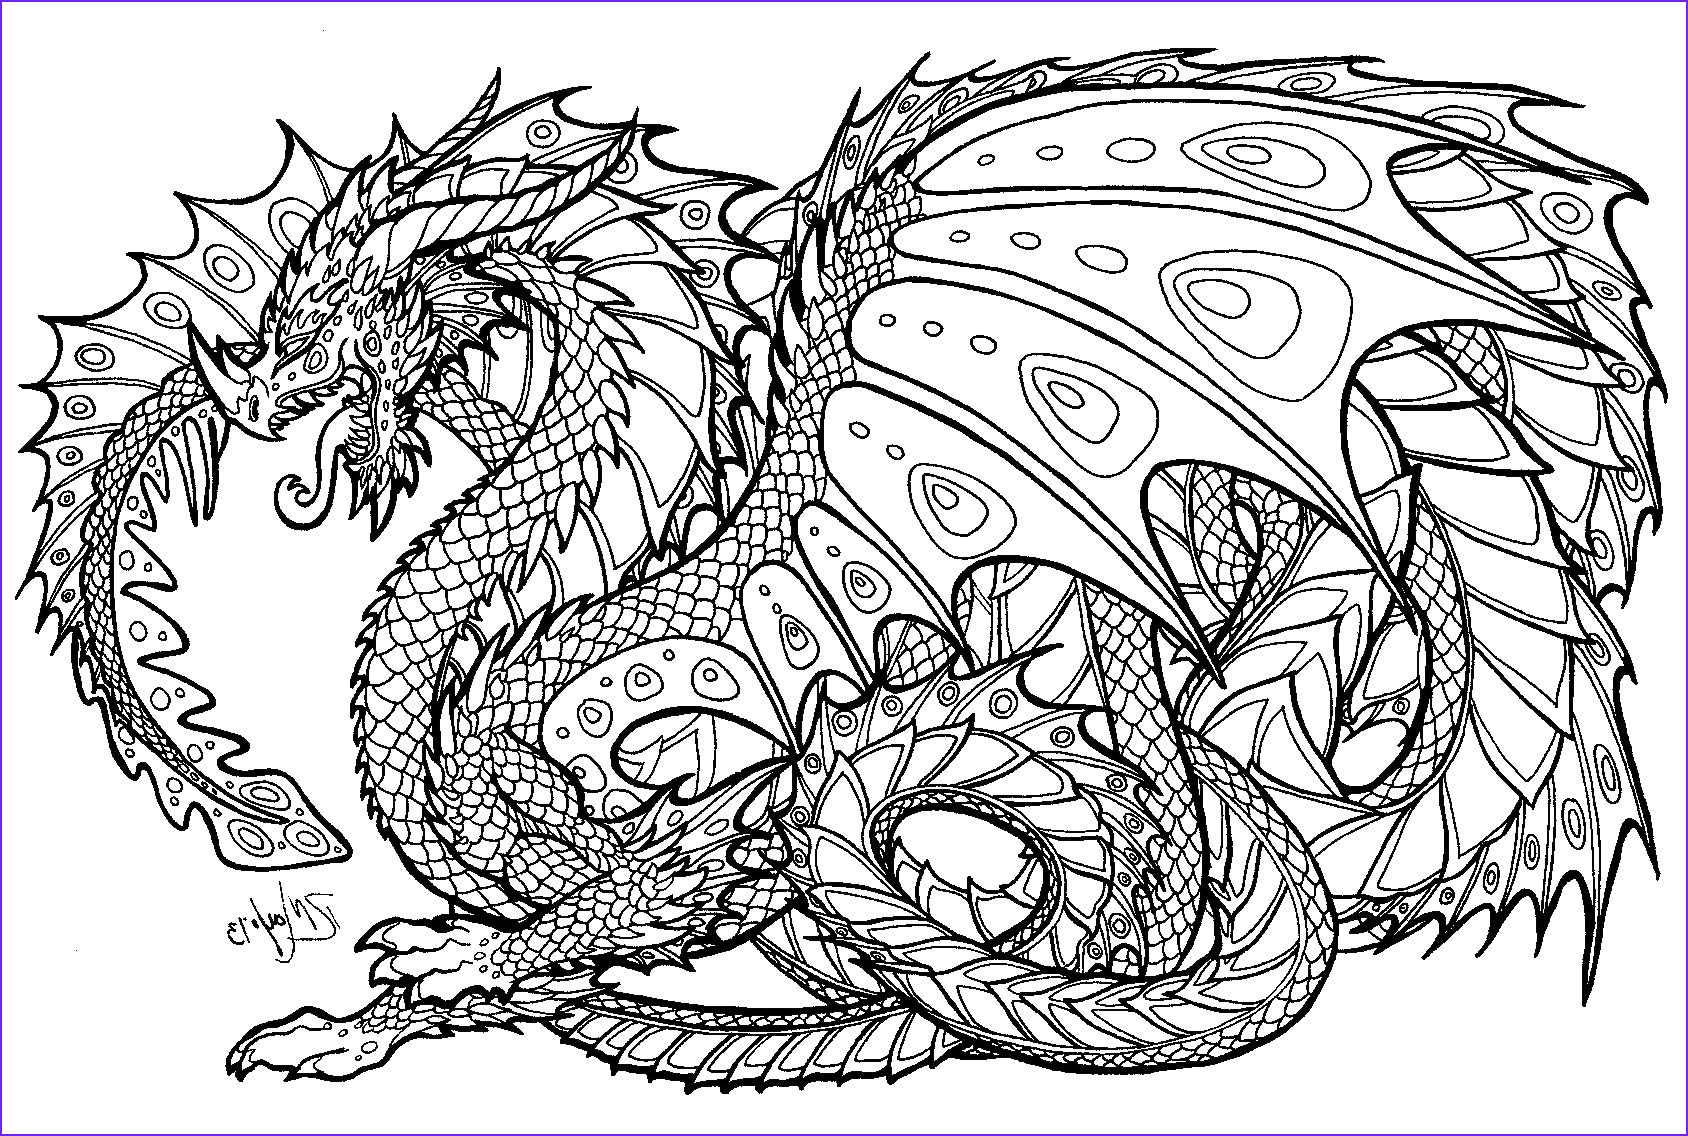 Dragon Coloring Pictures Awesome Image Free Printable Coloring Pages for Adults Advanced Dragons